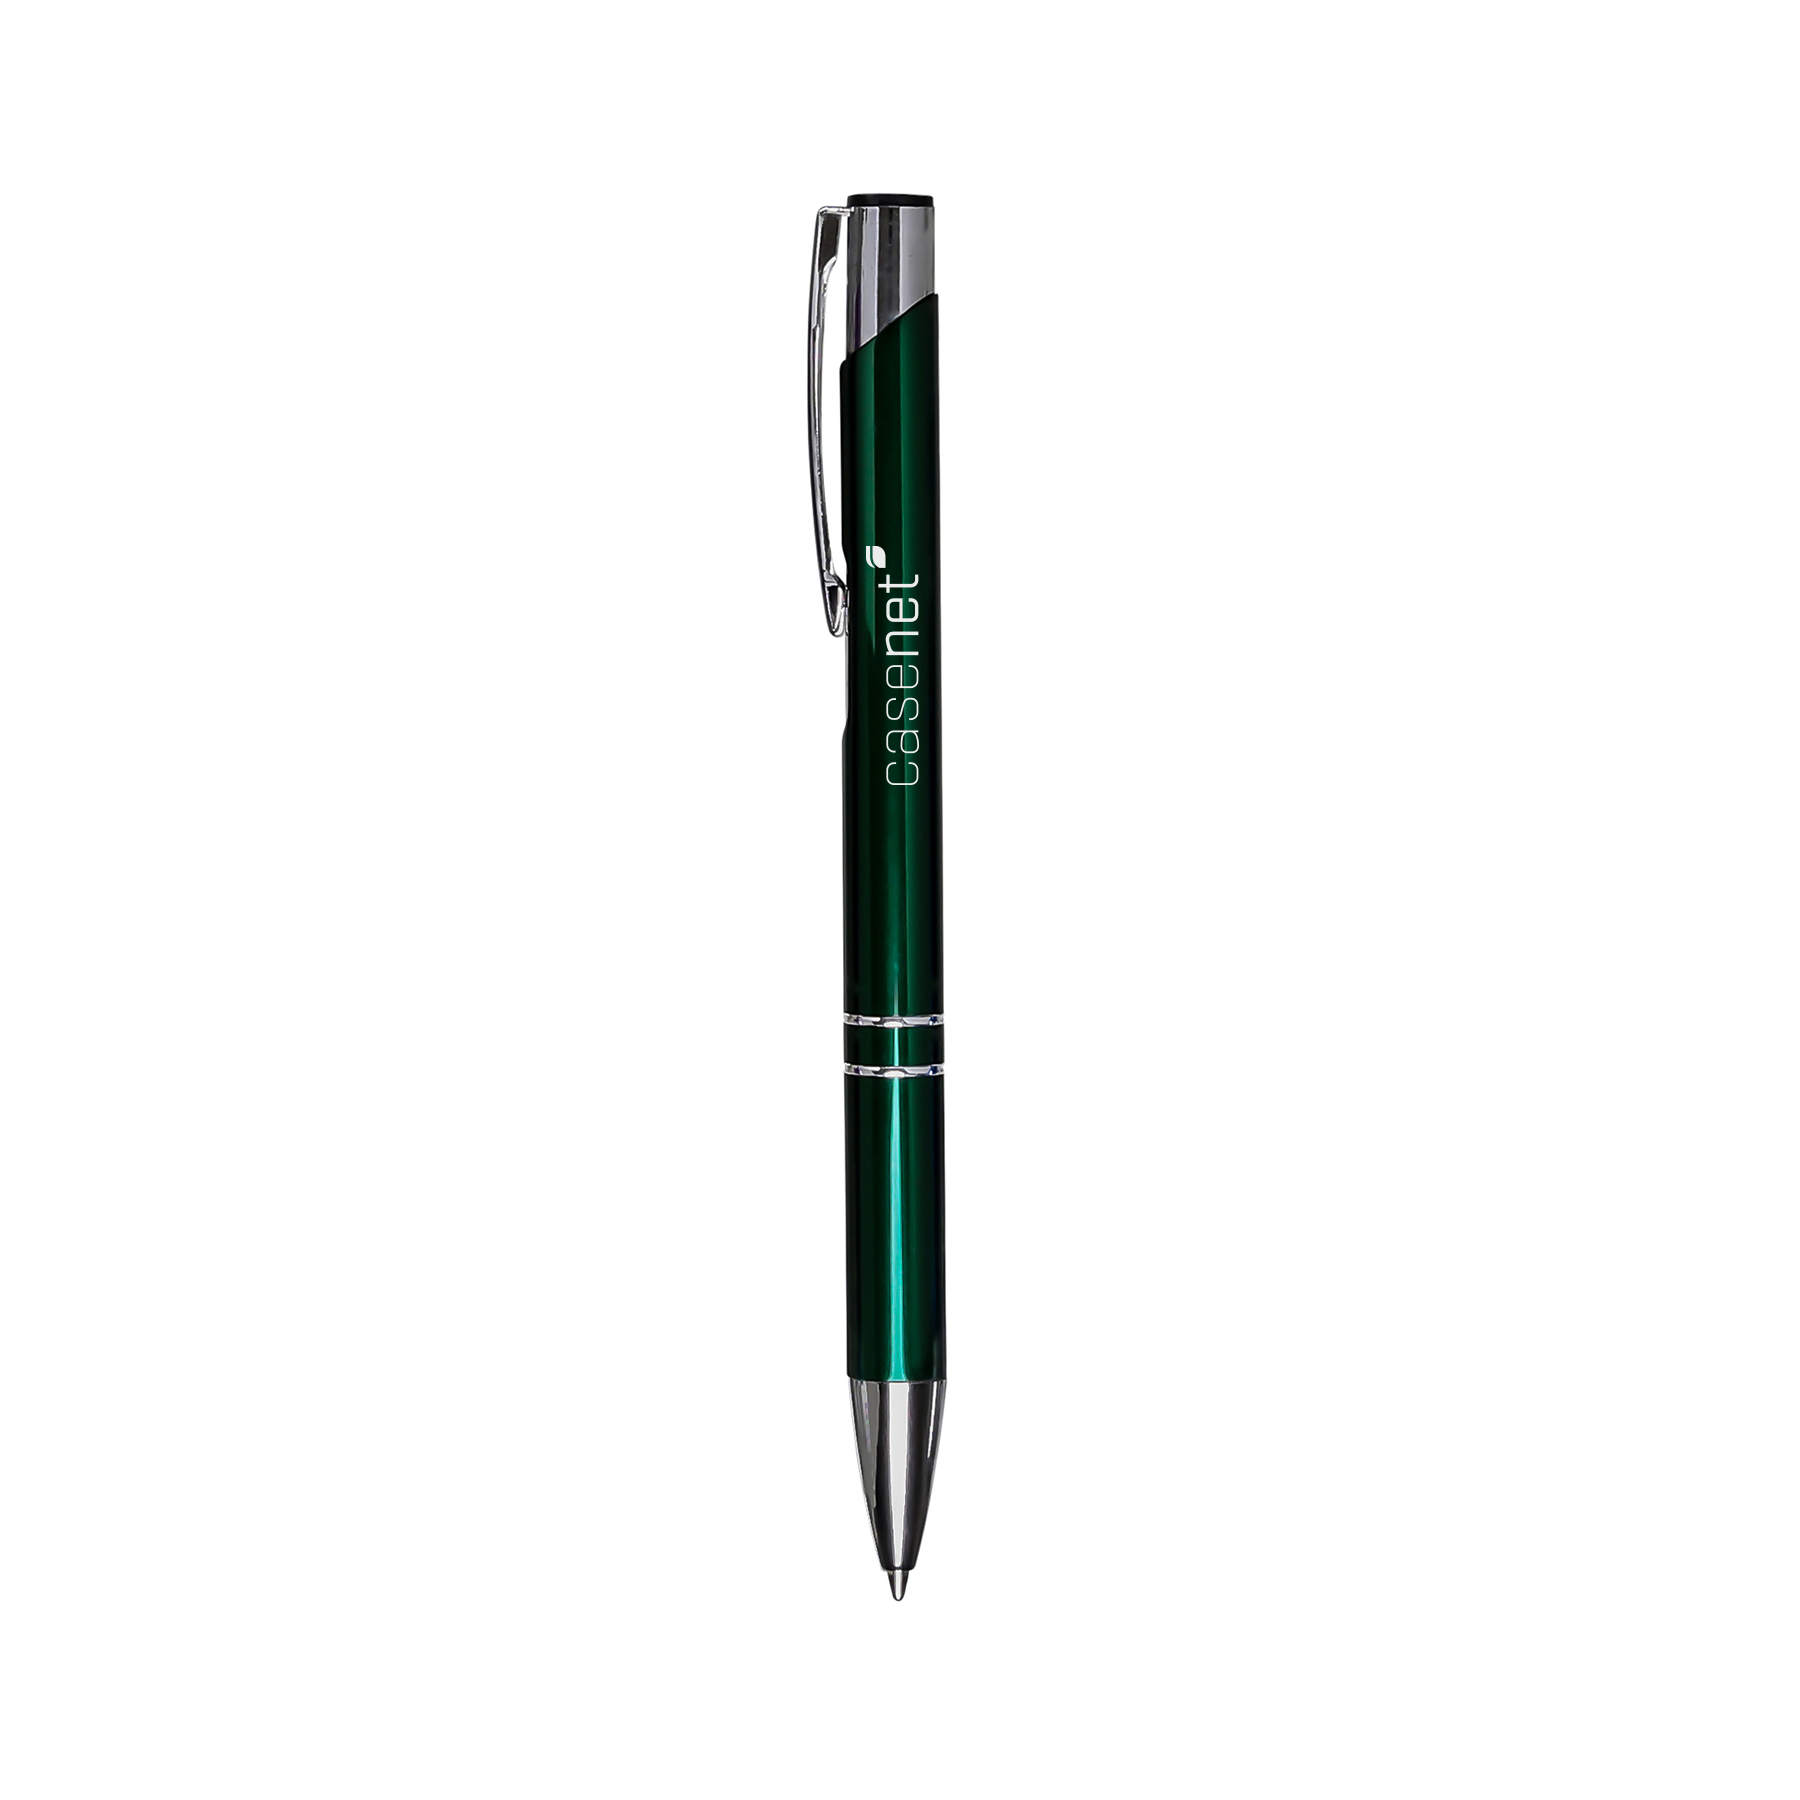 Alex Executive Pen